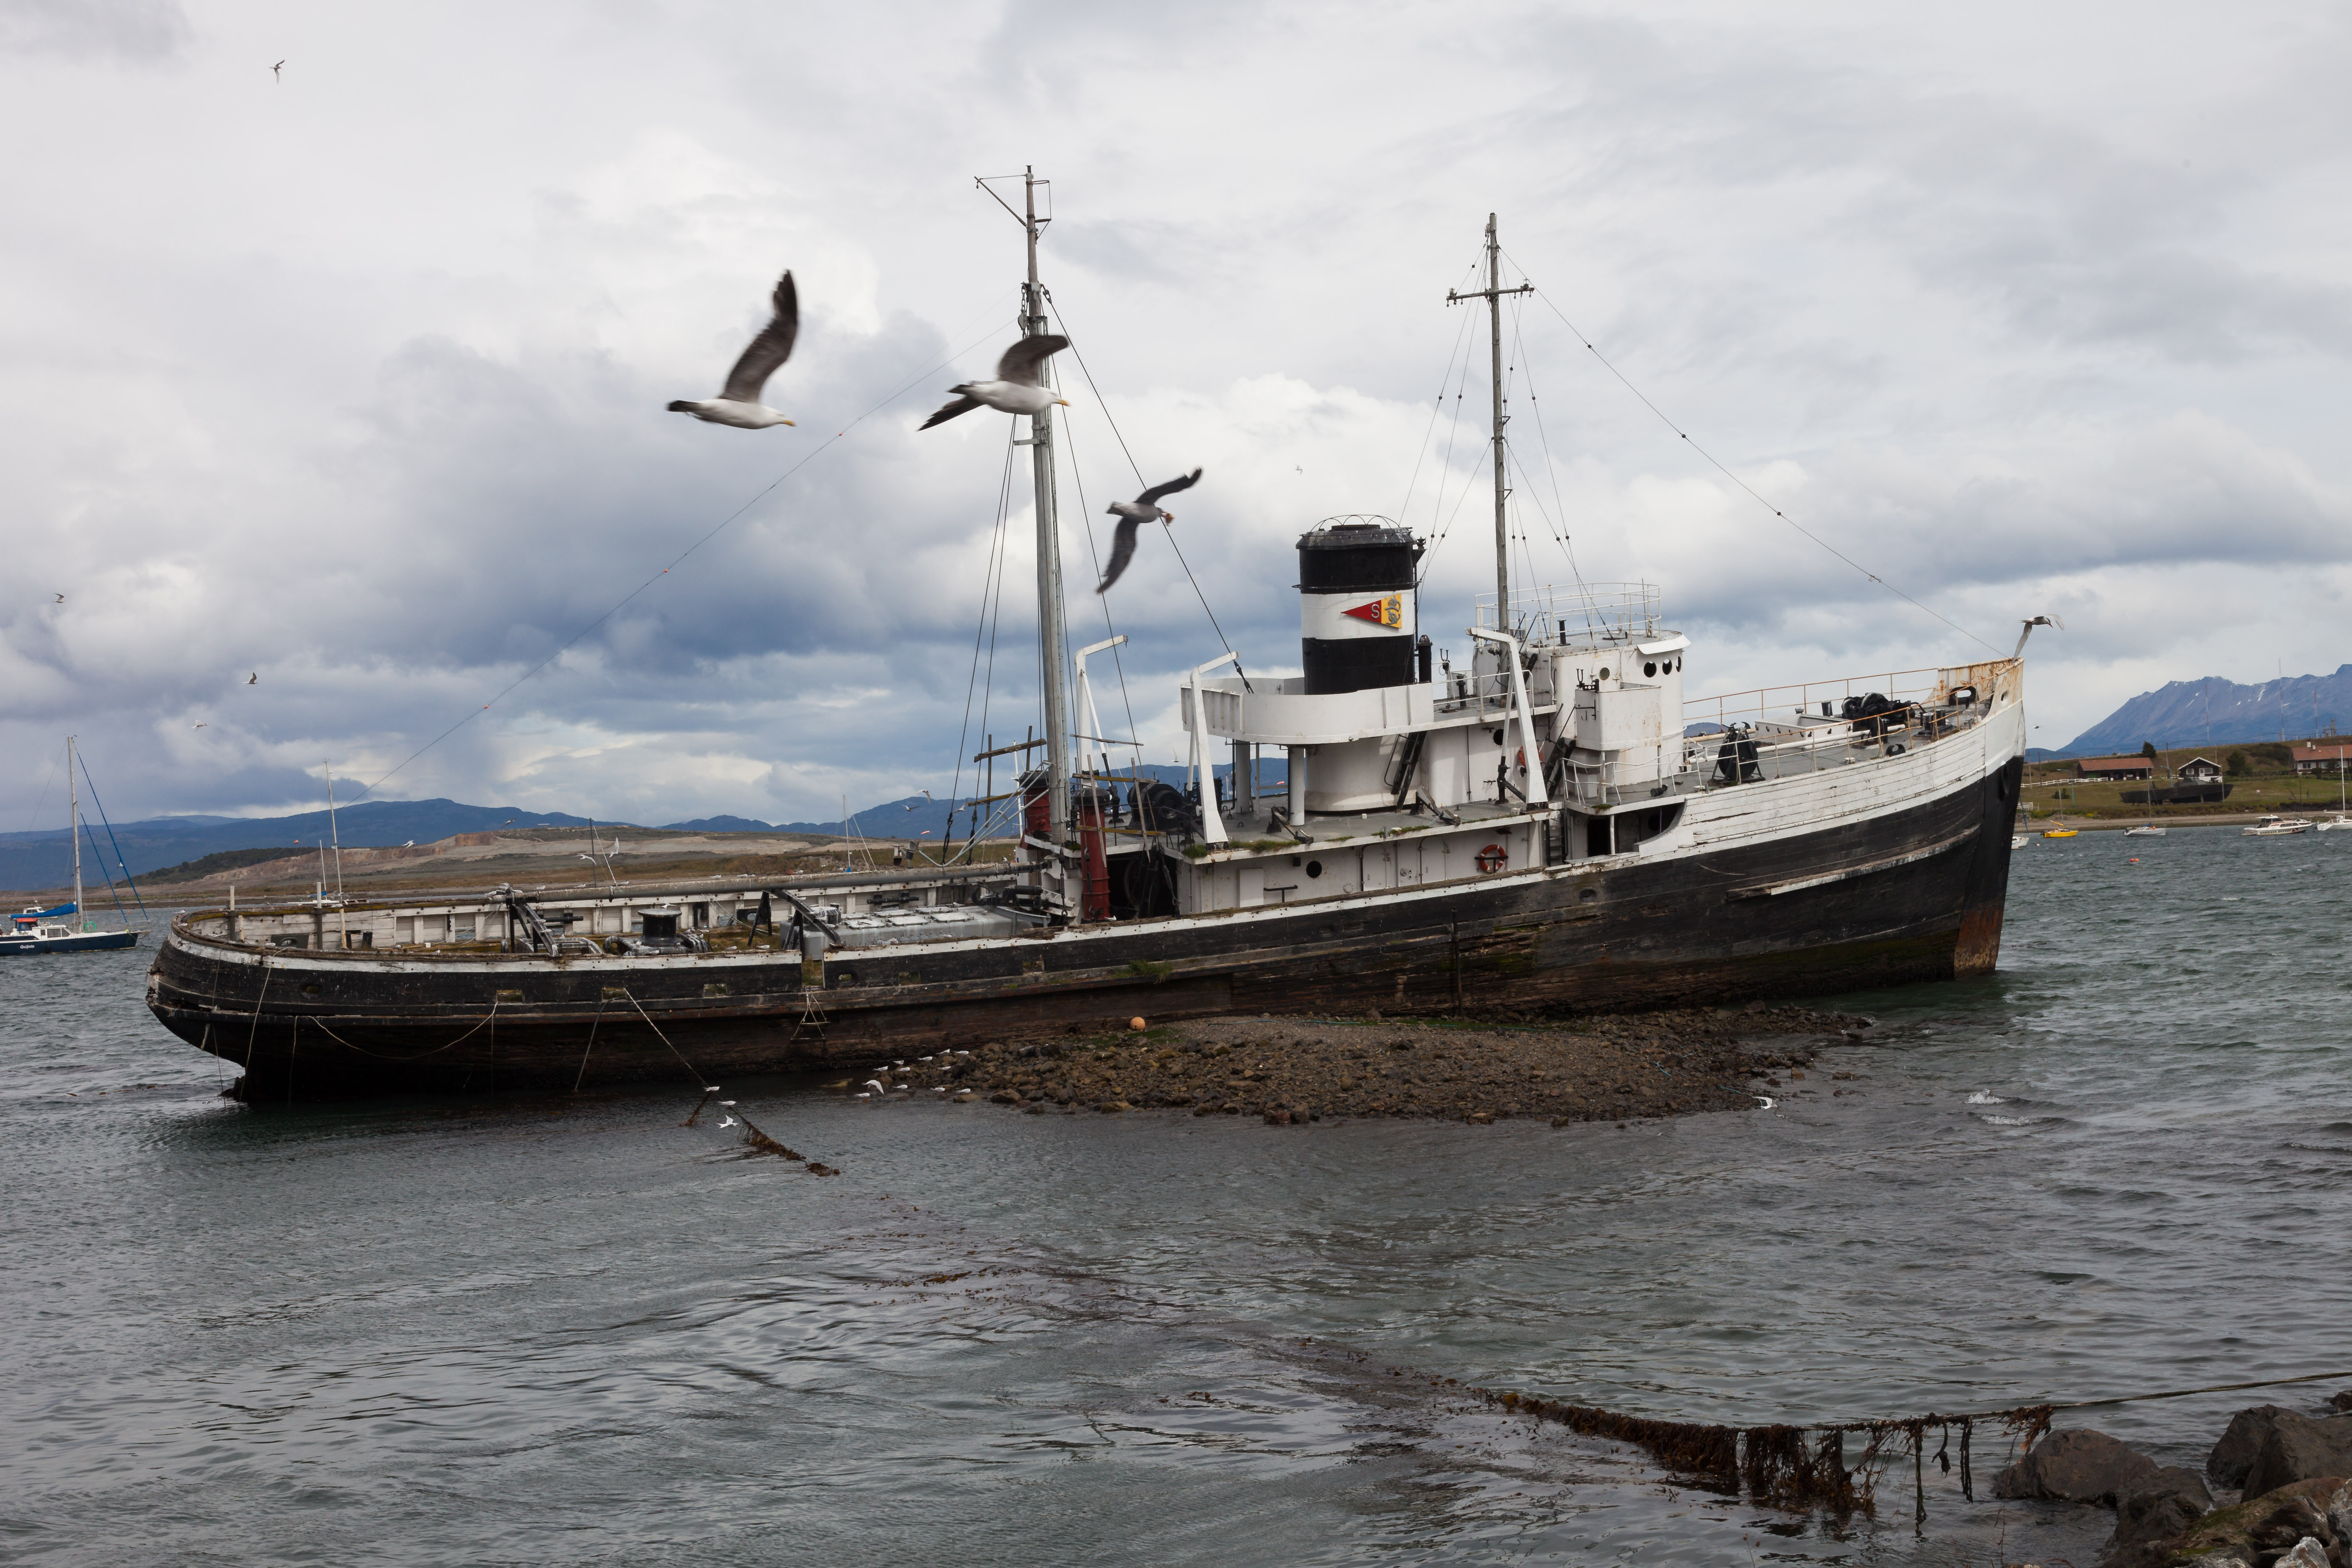 St. Christopher - Wreck HMS Justice (W140) at Ushuaia - Tierra d